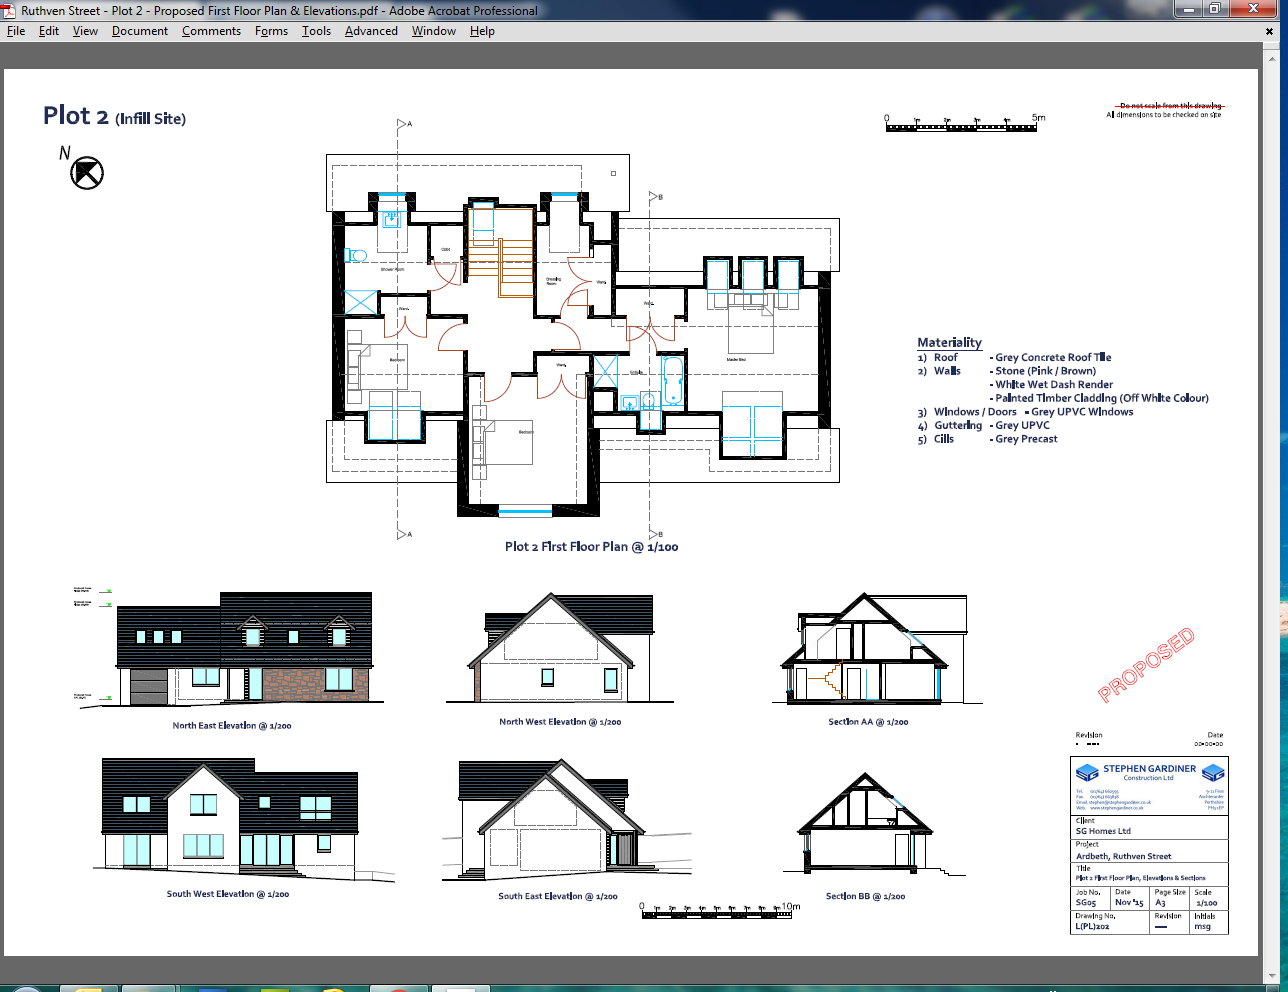 Proposed First Floor Plan & Elevations